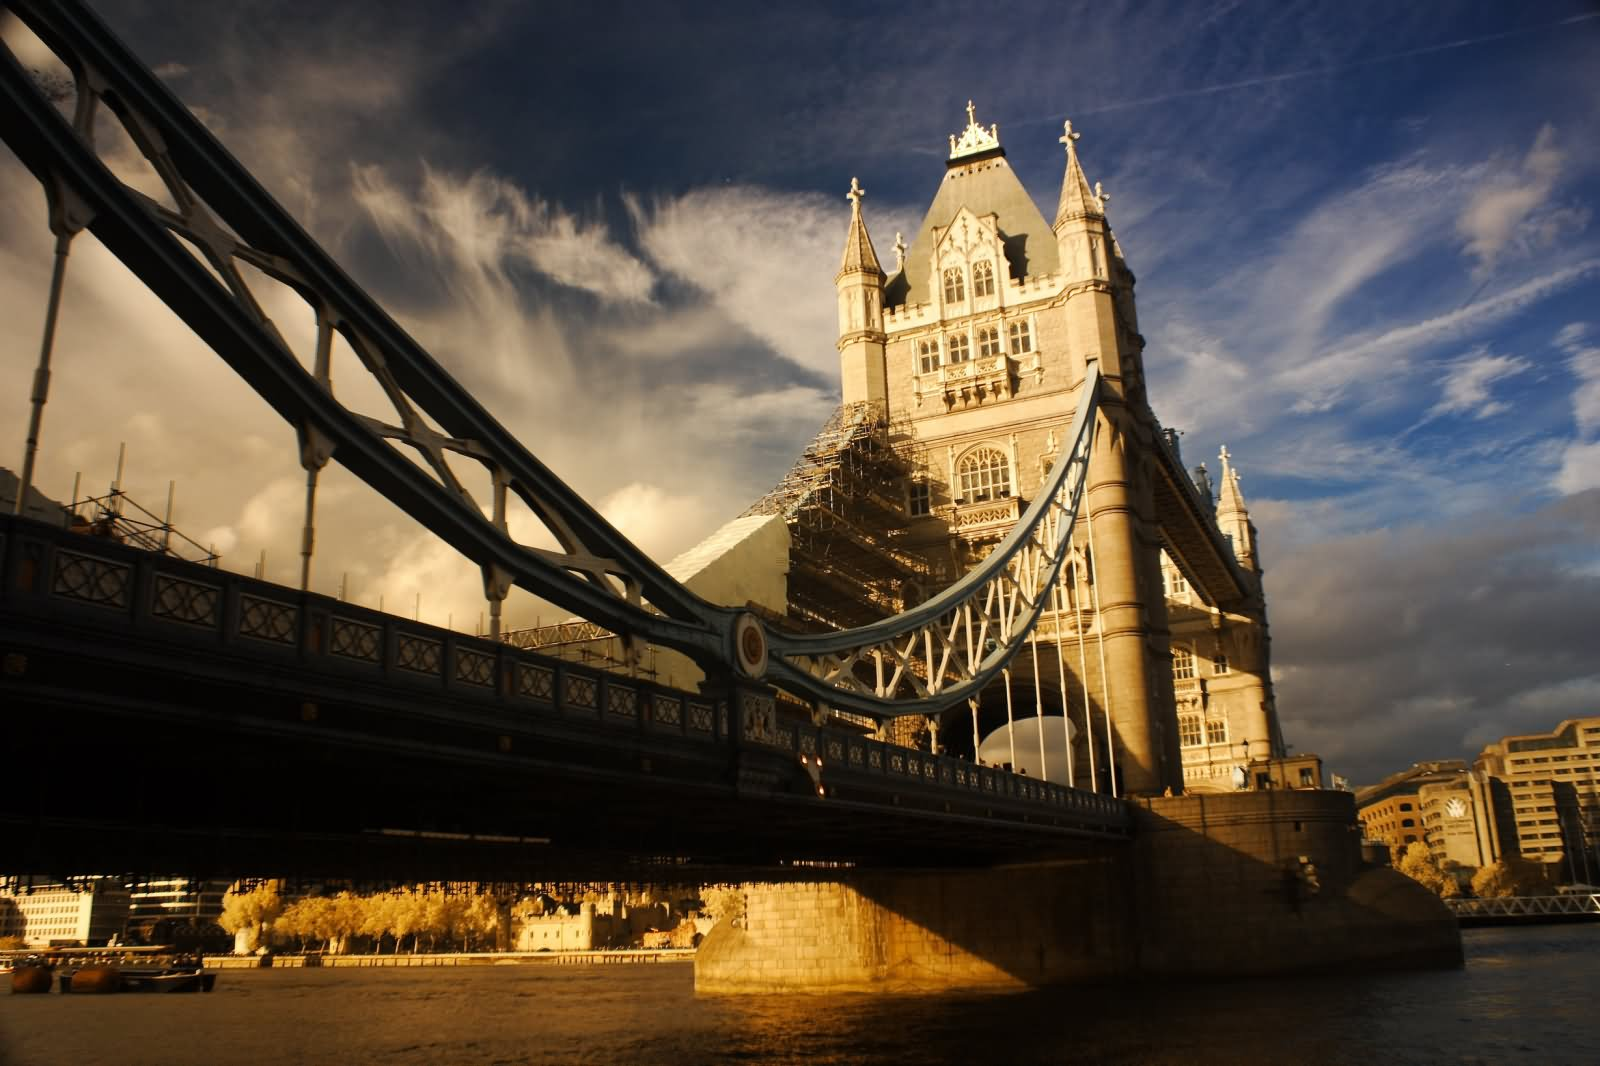 Sunset View Of Tower Bridge On River Thames London